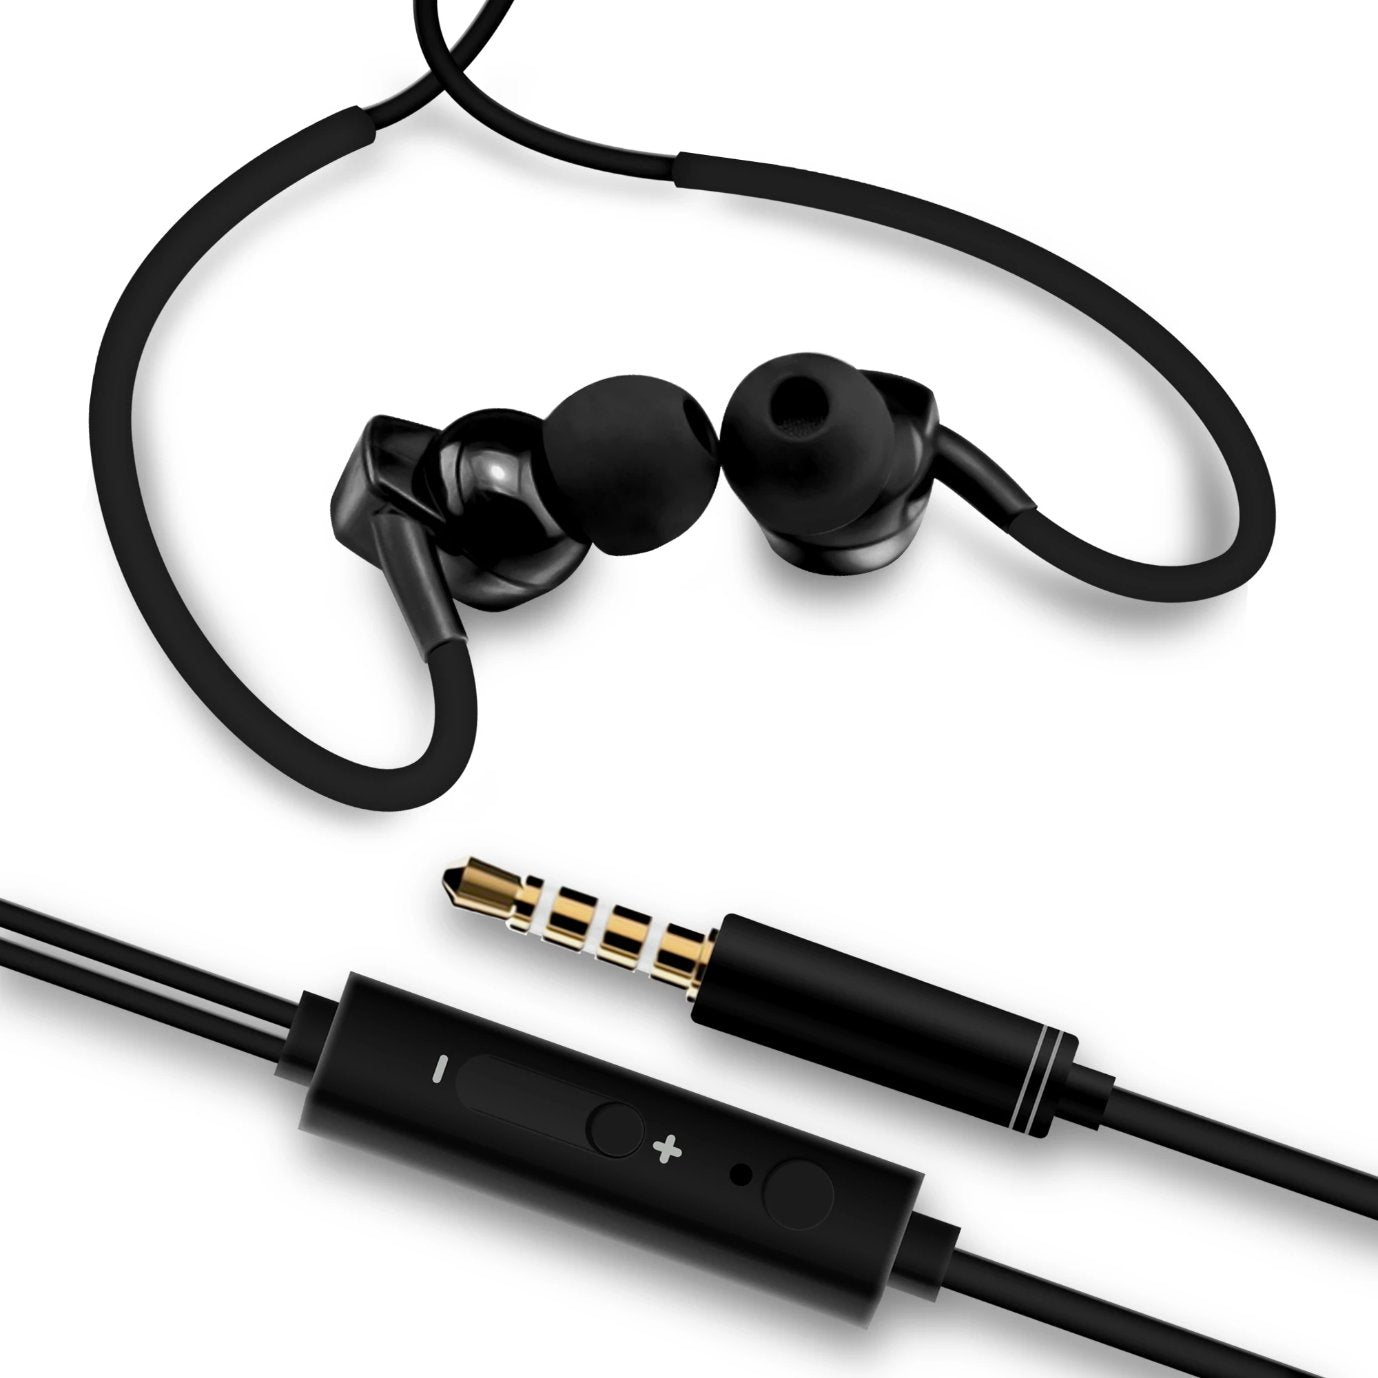 iSoul iPhone Ear Canal Metal Earphones with pure Sound & Powerful Bass, Audio Accessories by TradeNRG